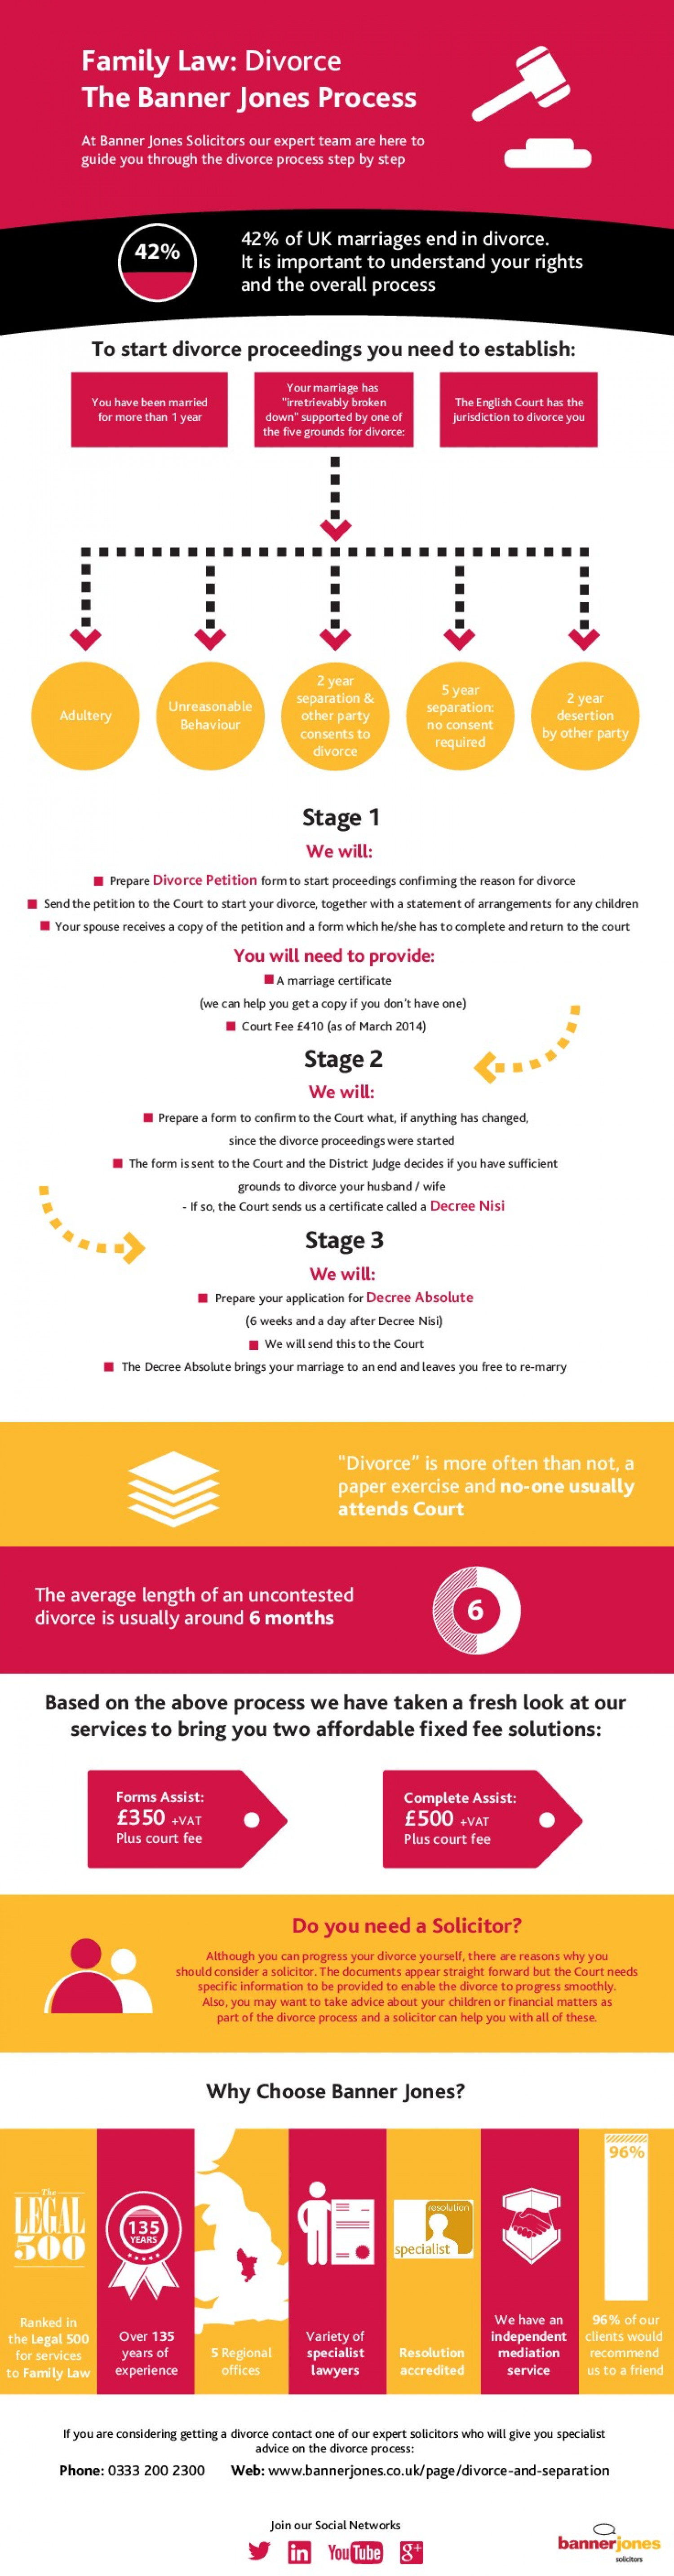 Family Law - The Divorce Process Infographic